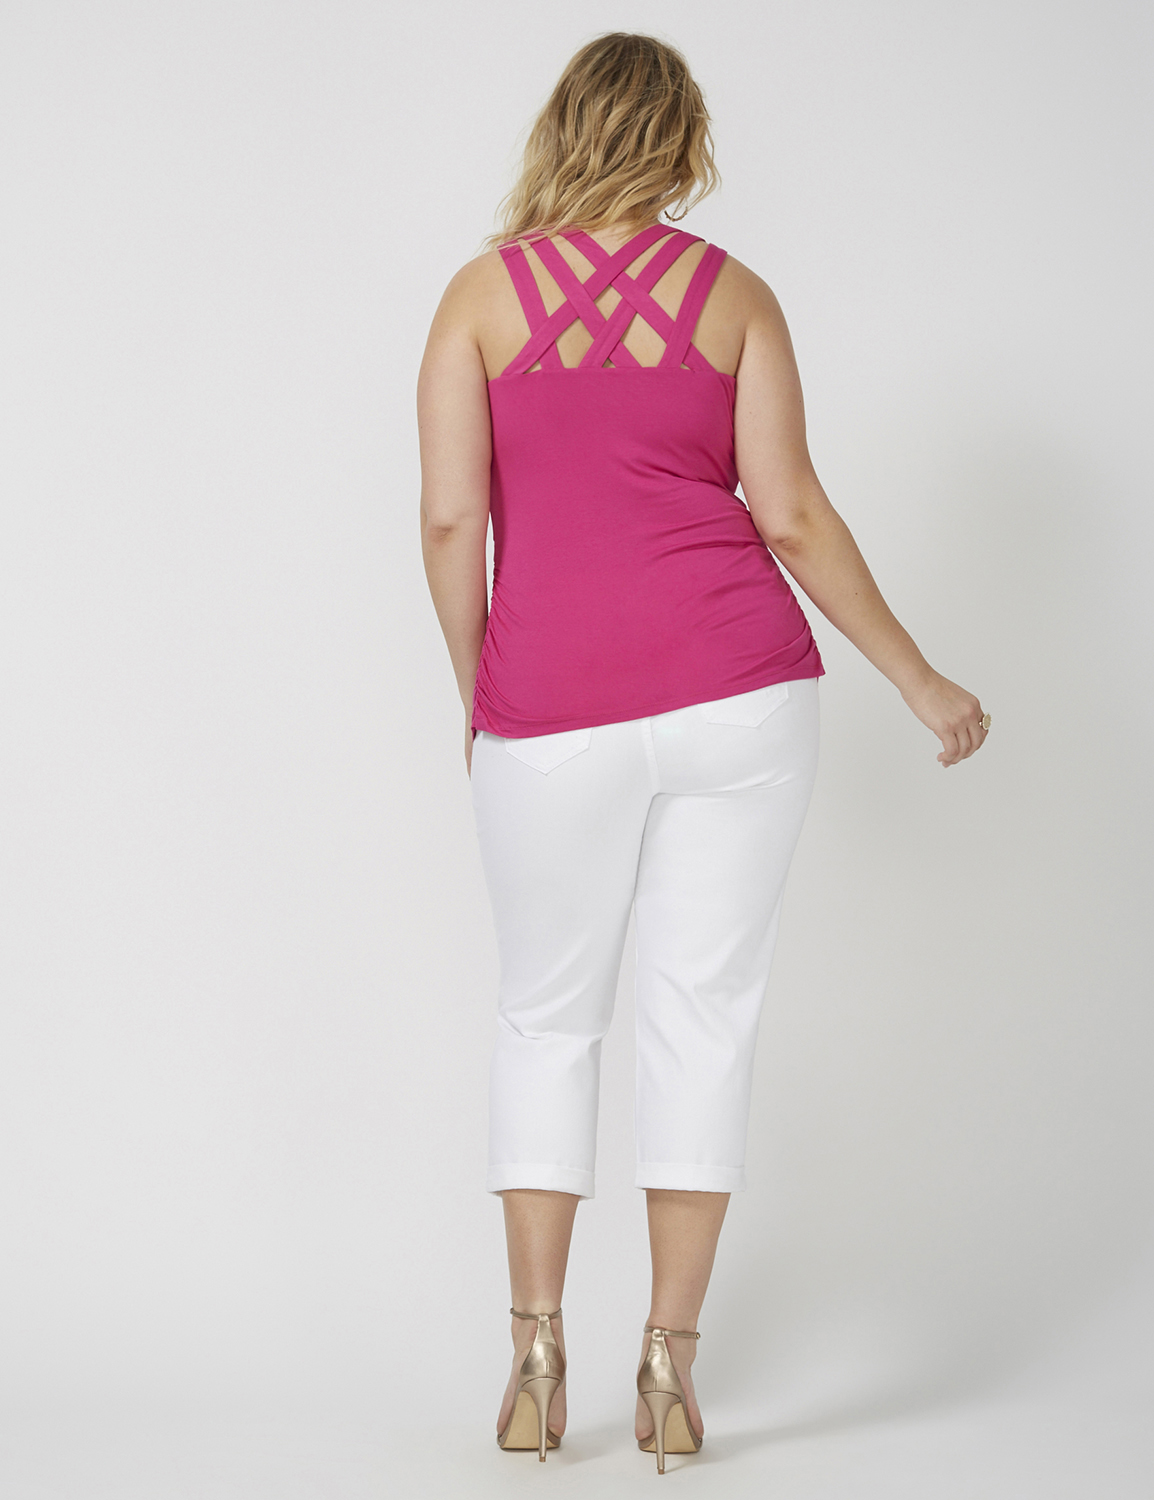 retouched back of fashion model wearing pink tank top and white capris for ecommerce site